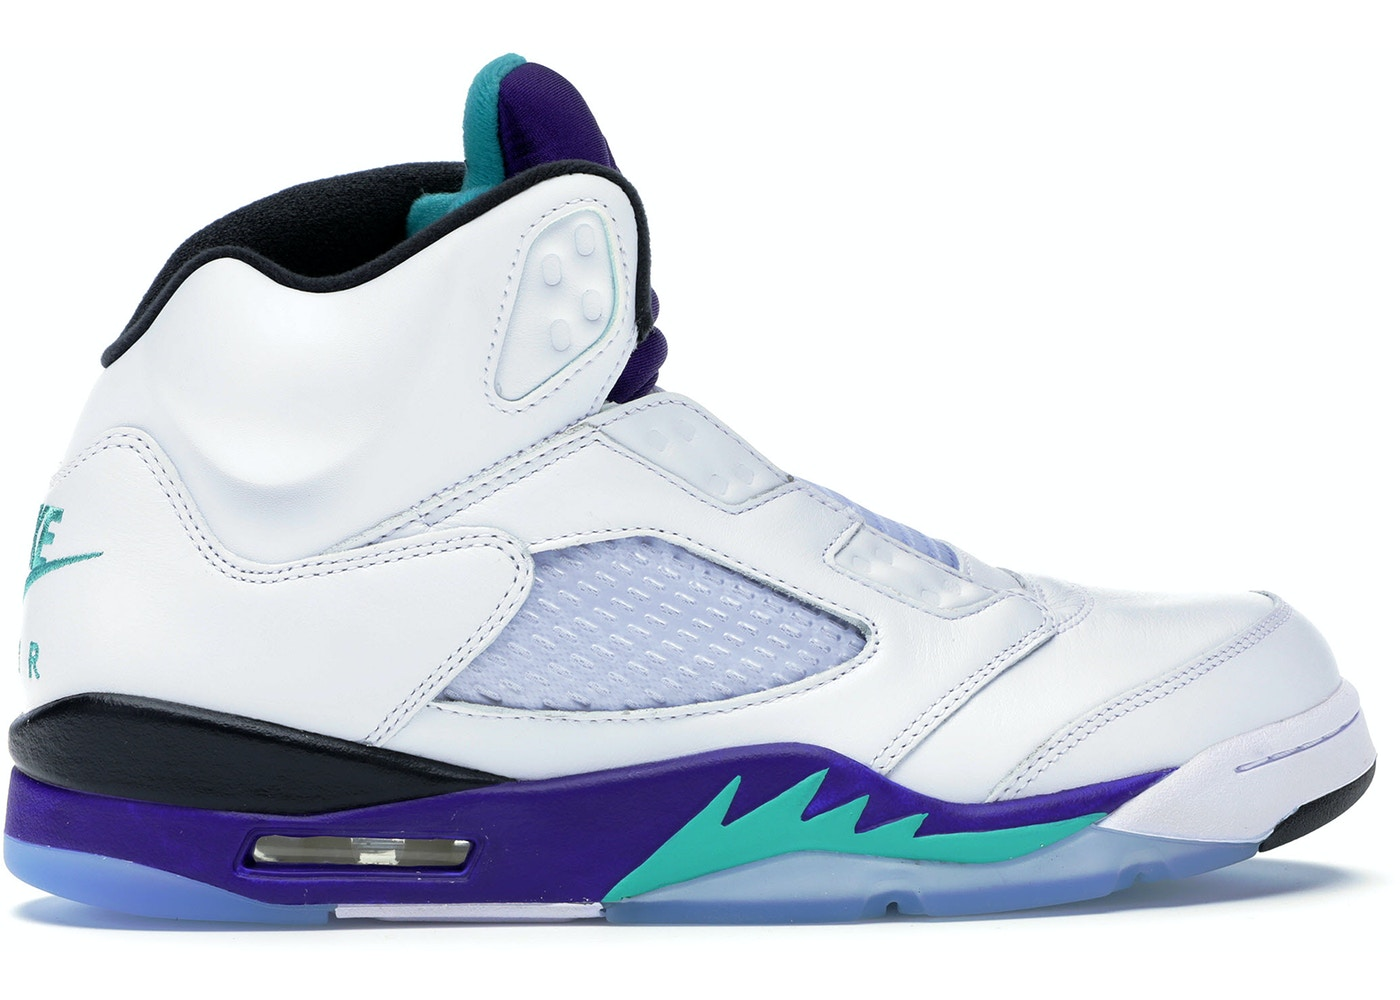 7caf4302093 Jordan 5 Retro Grape Fresh Prince - AV3919-135